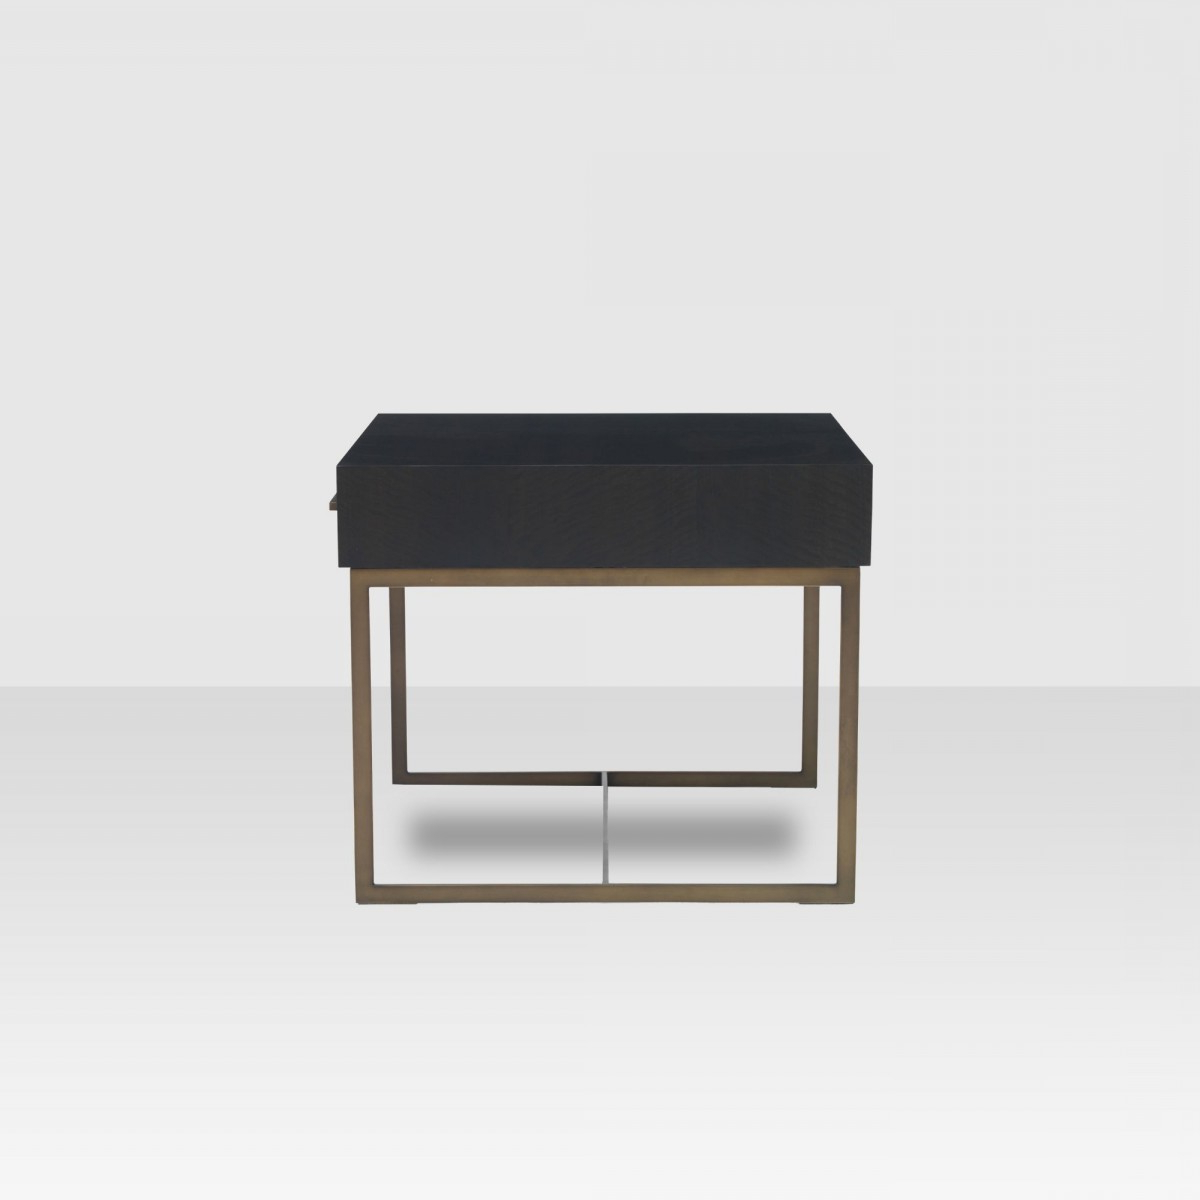 Allure Nesting Cocktail Tables – Elte With Regard To Well Known Allure Cocktail Tables (View 13 of 20)